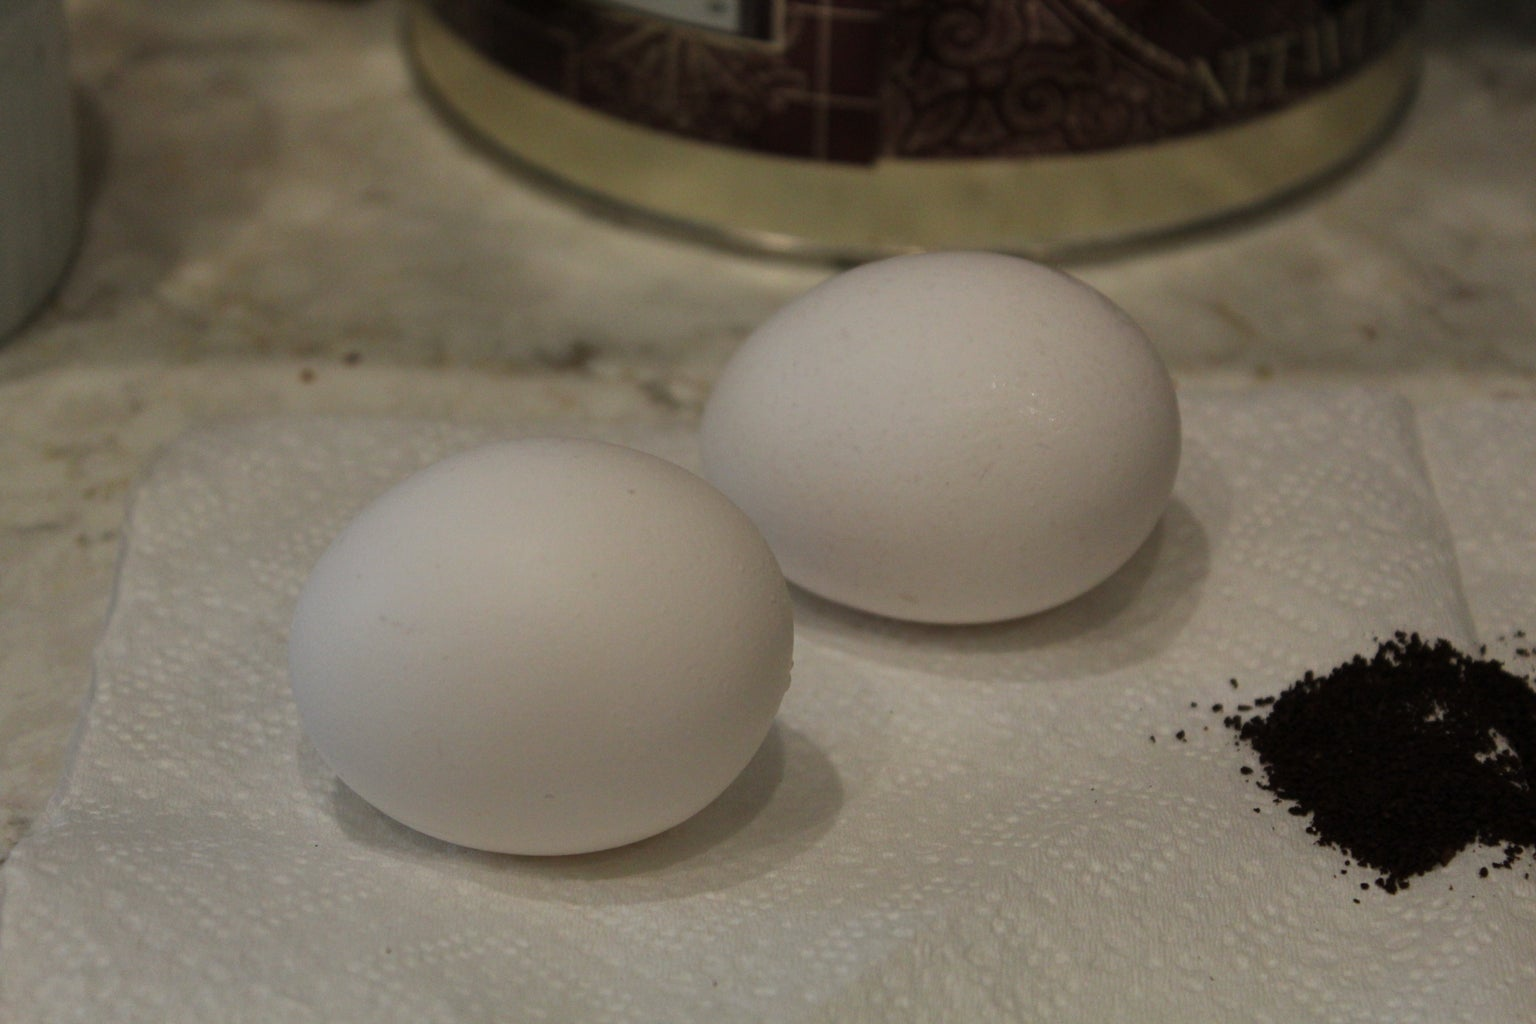 Subtract an Egg White